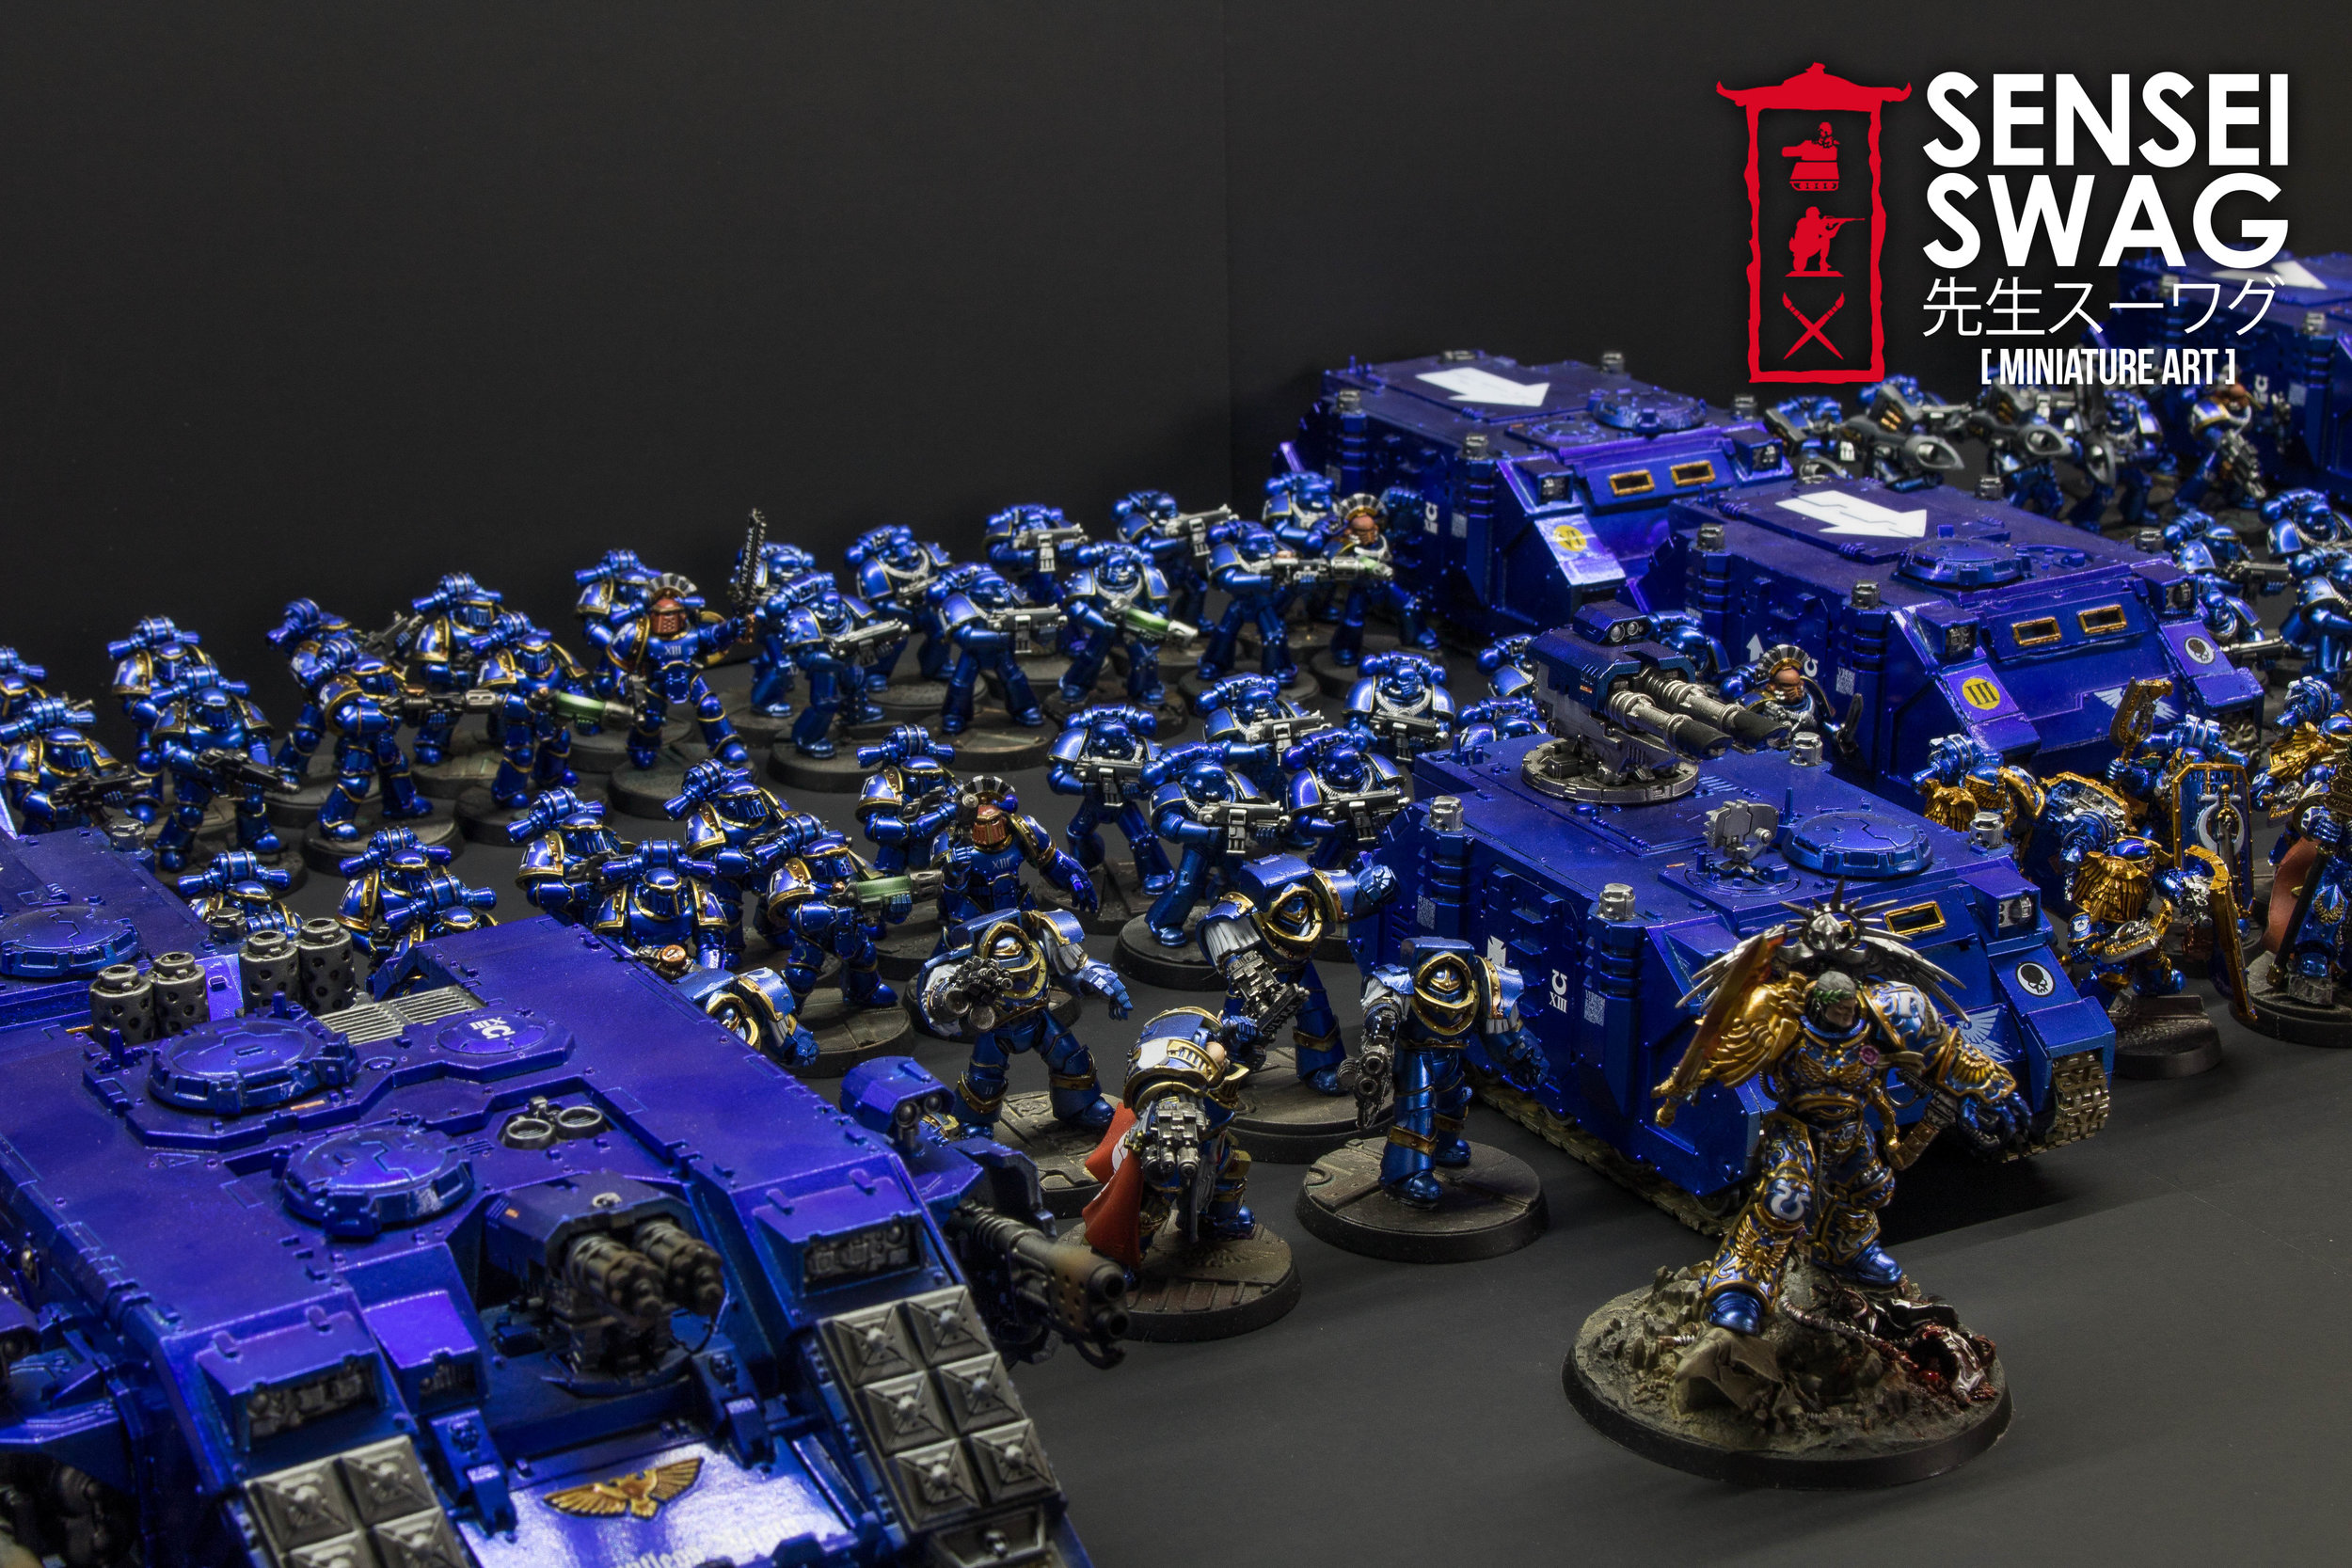 Ultramarines 2nd Battle Company Guilliman Shiny Chome Gloss Blue-4.jpg